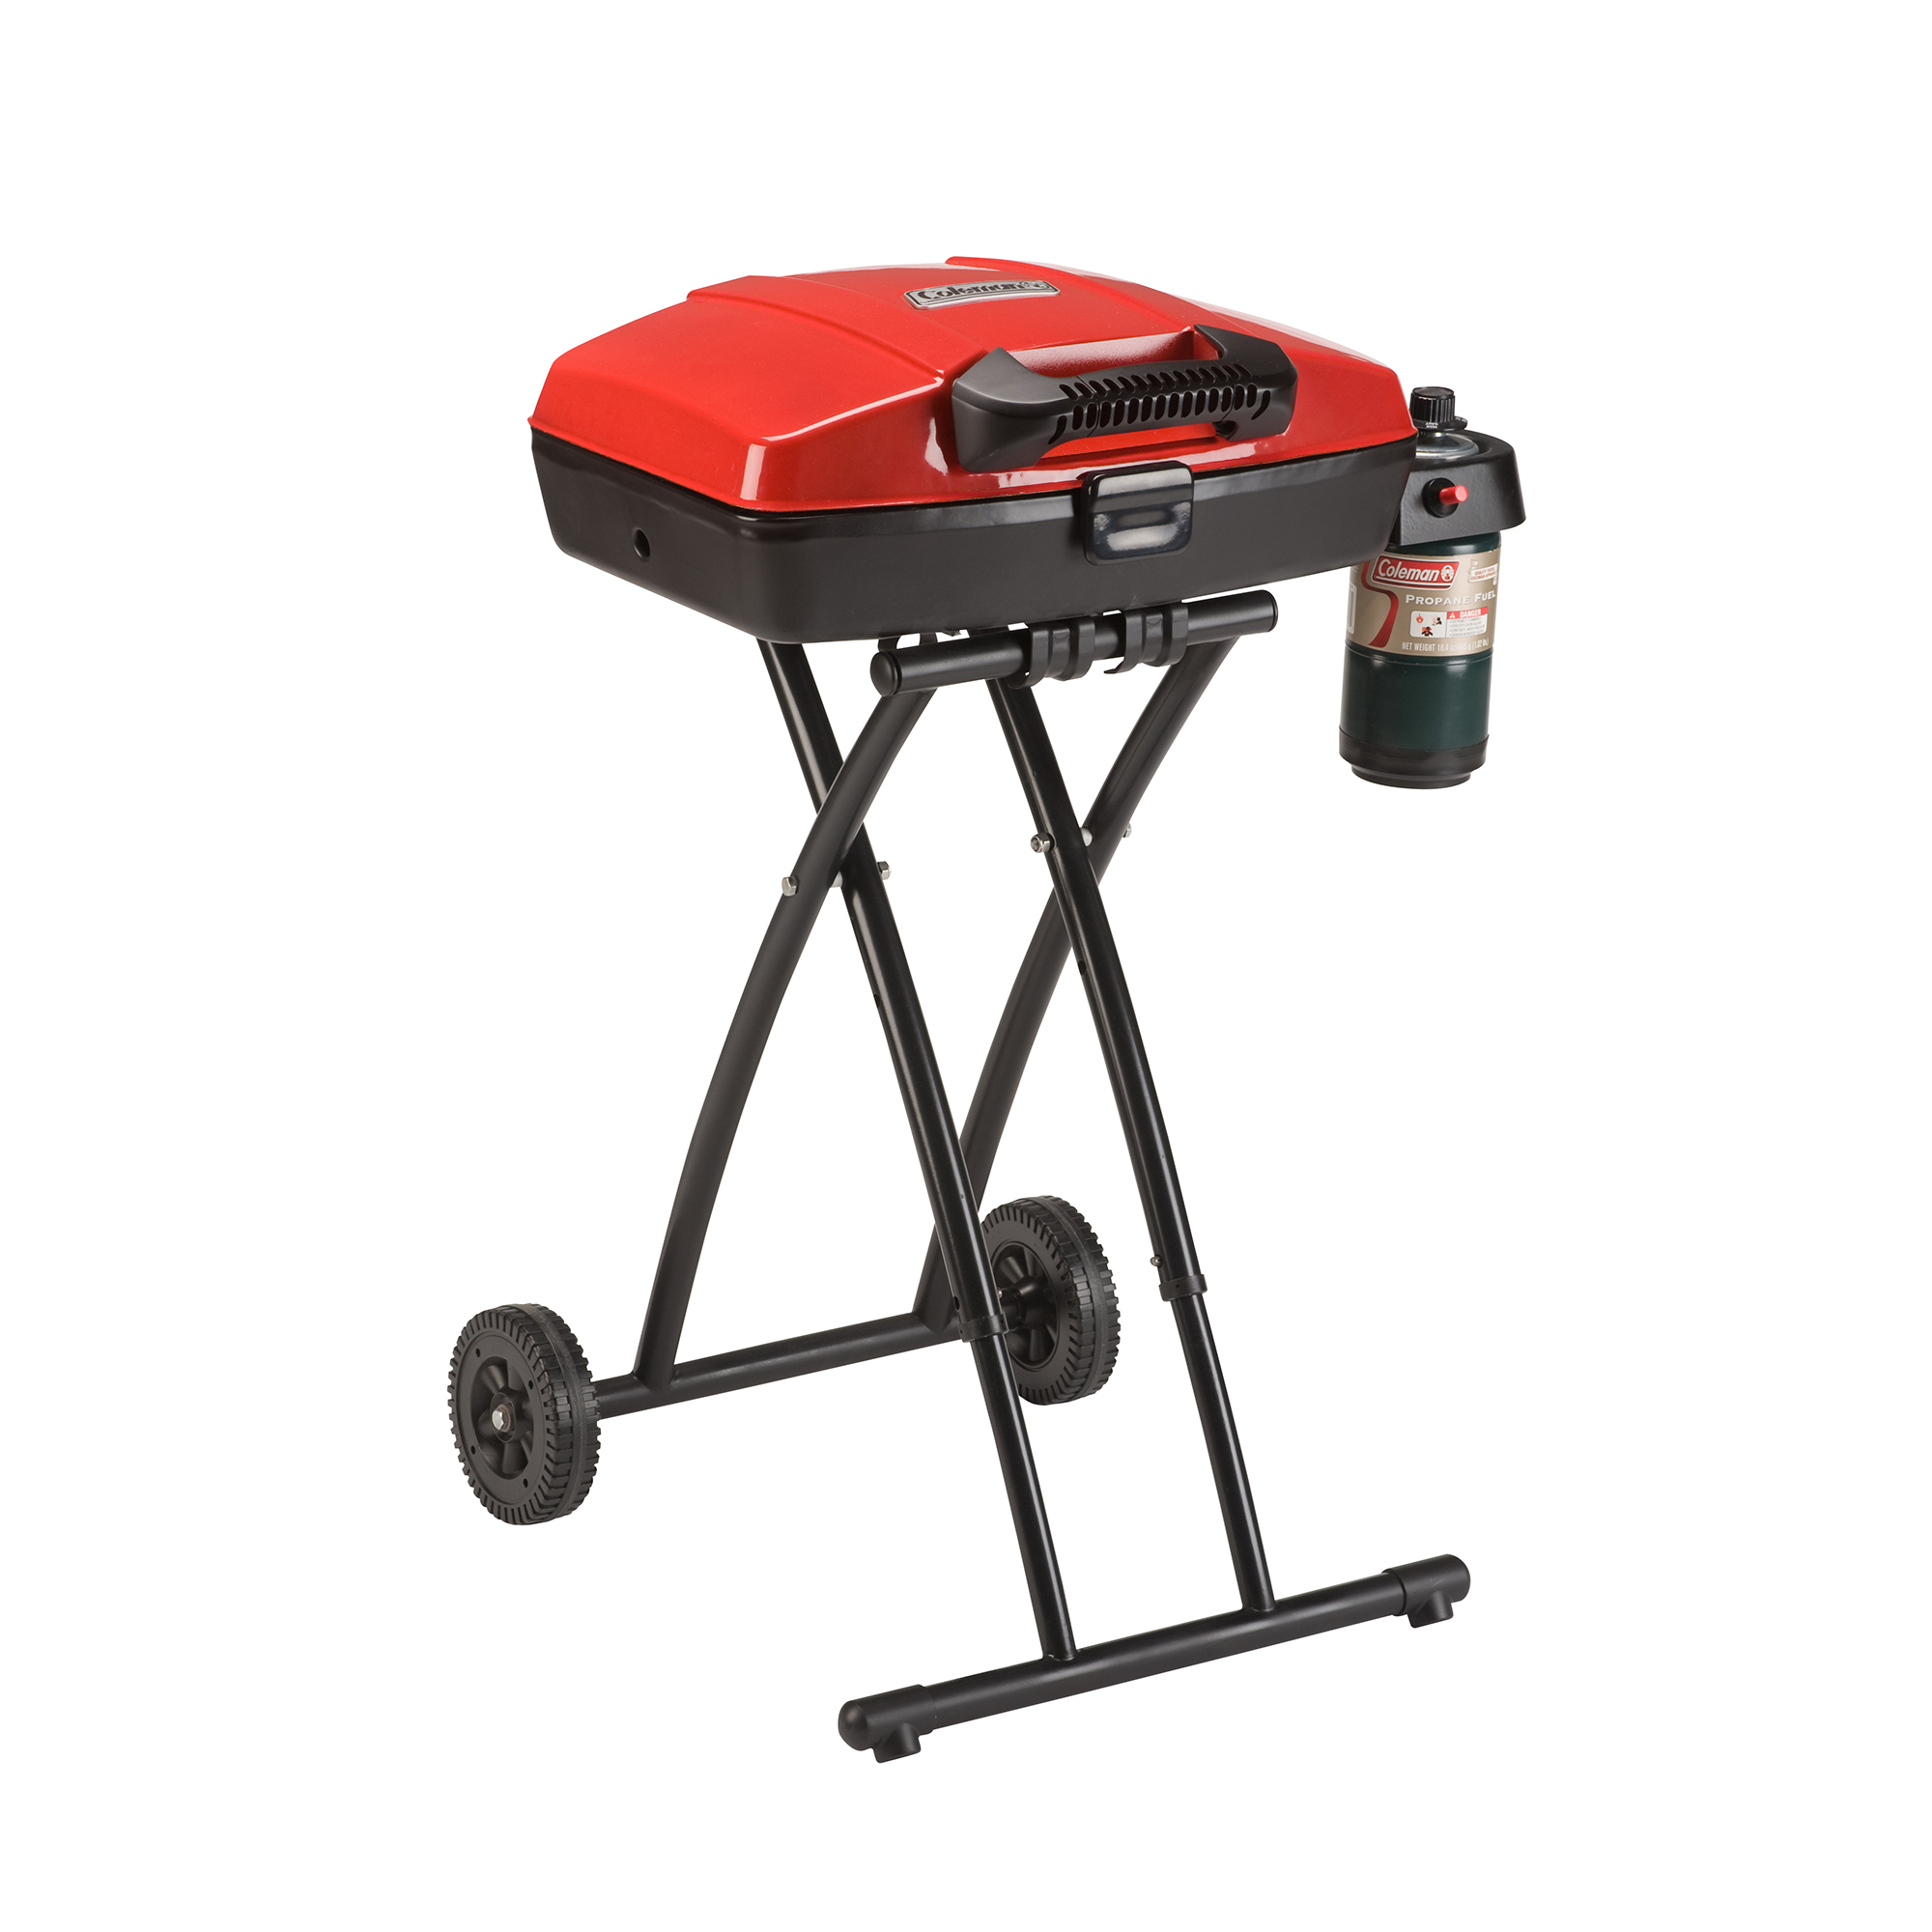 <strong>Up to 15 Percent Off BBQs & Grills</strong>